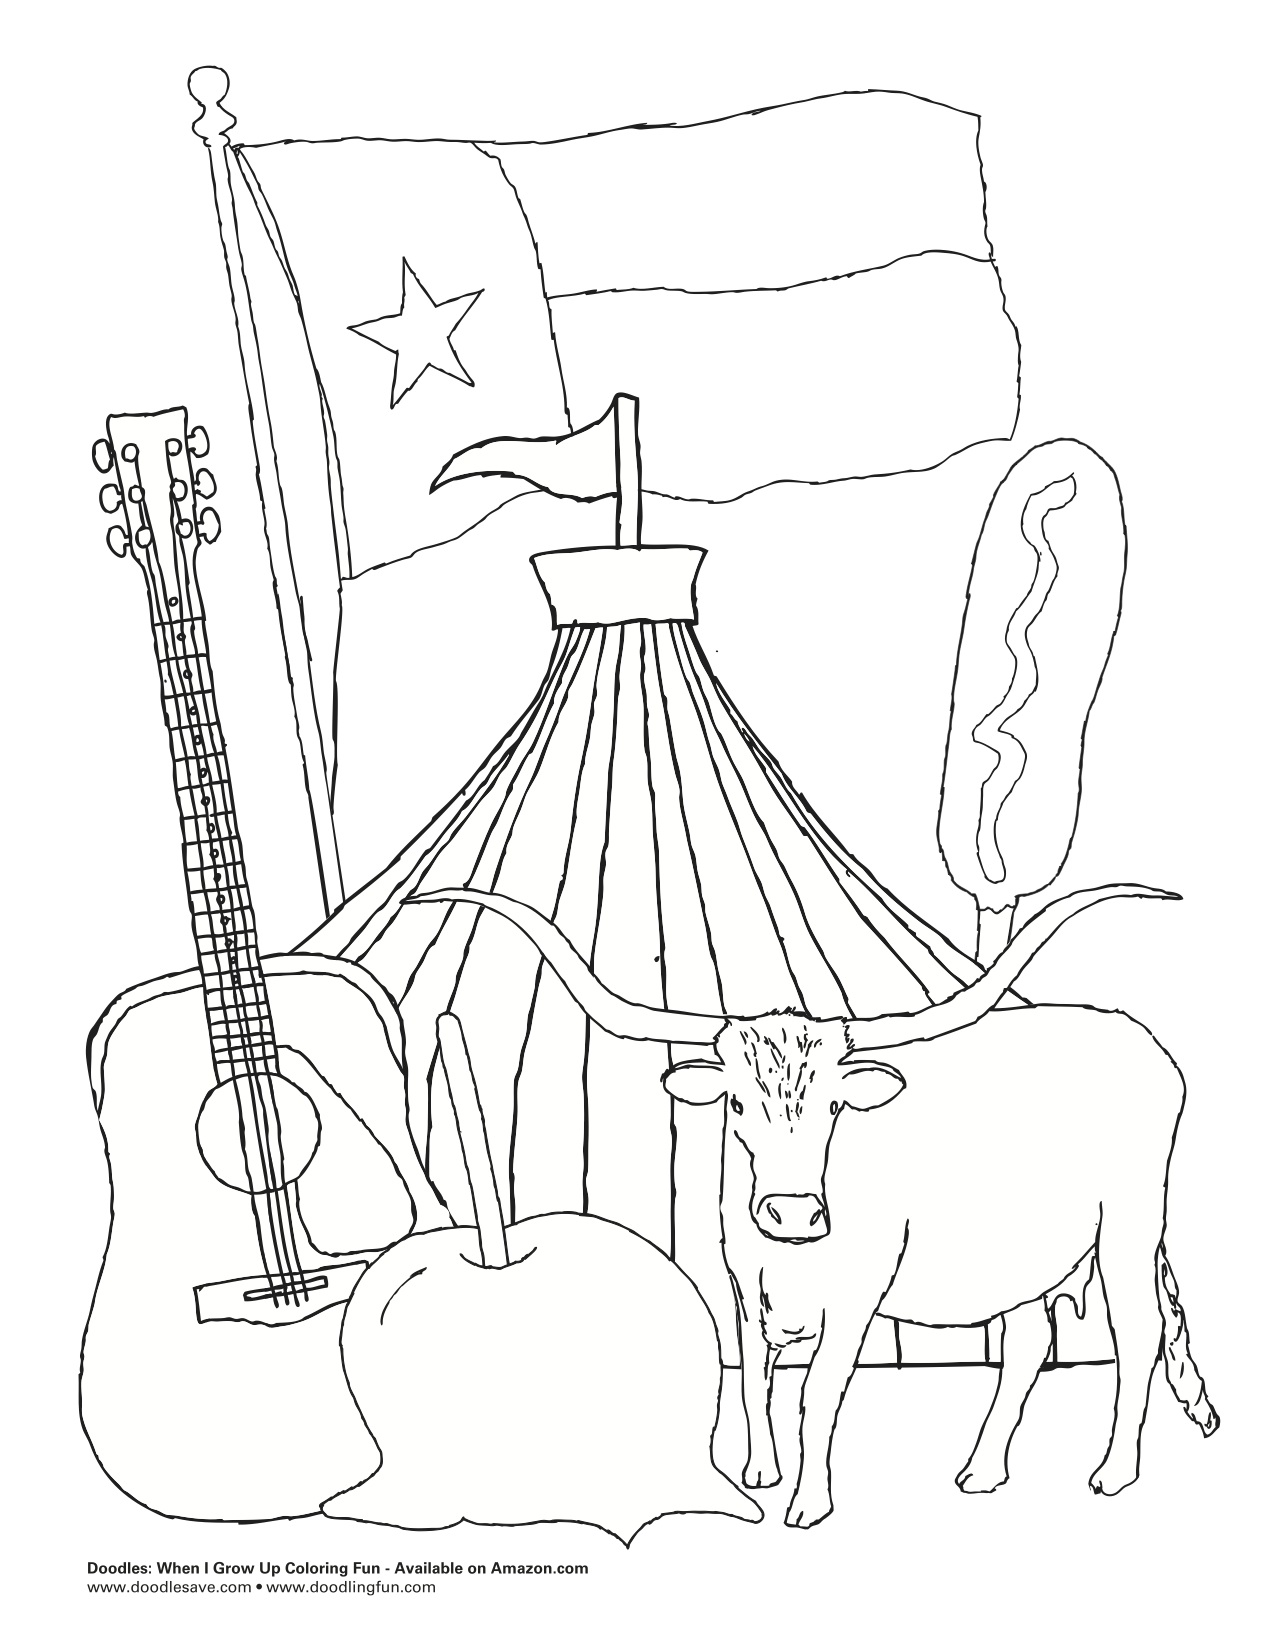 state of texas coloring page - the state fair of texas doodles ave